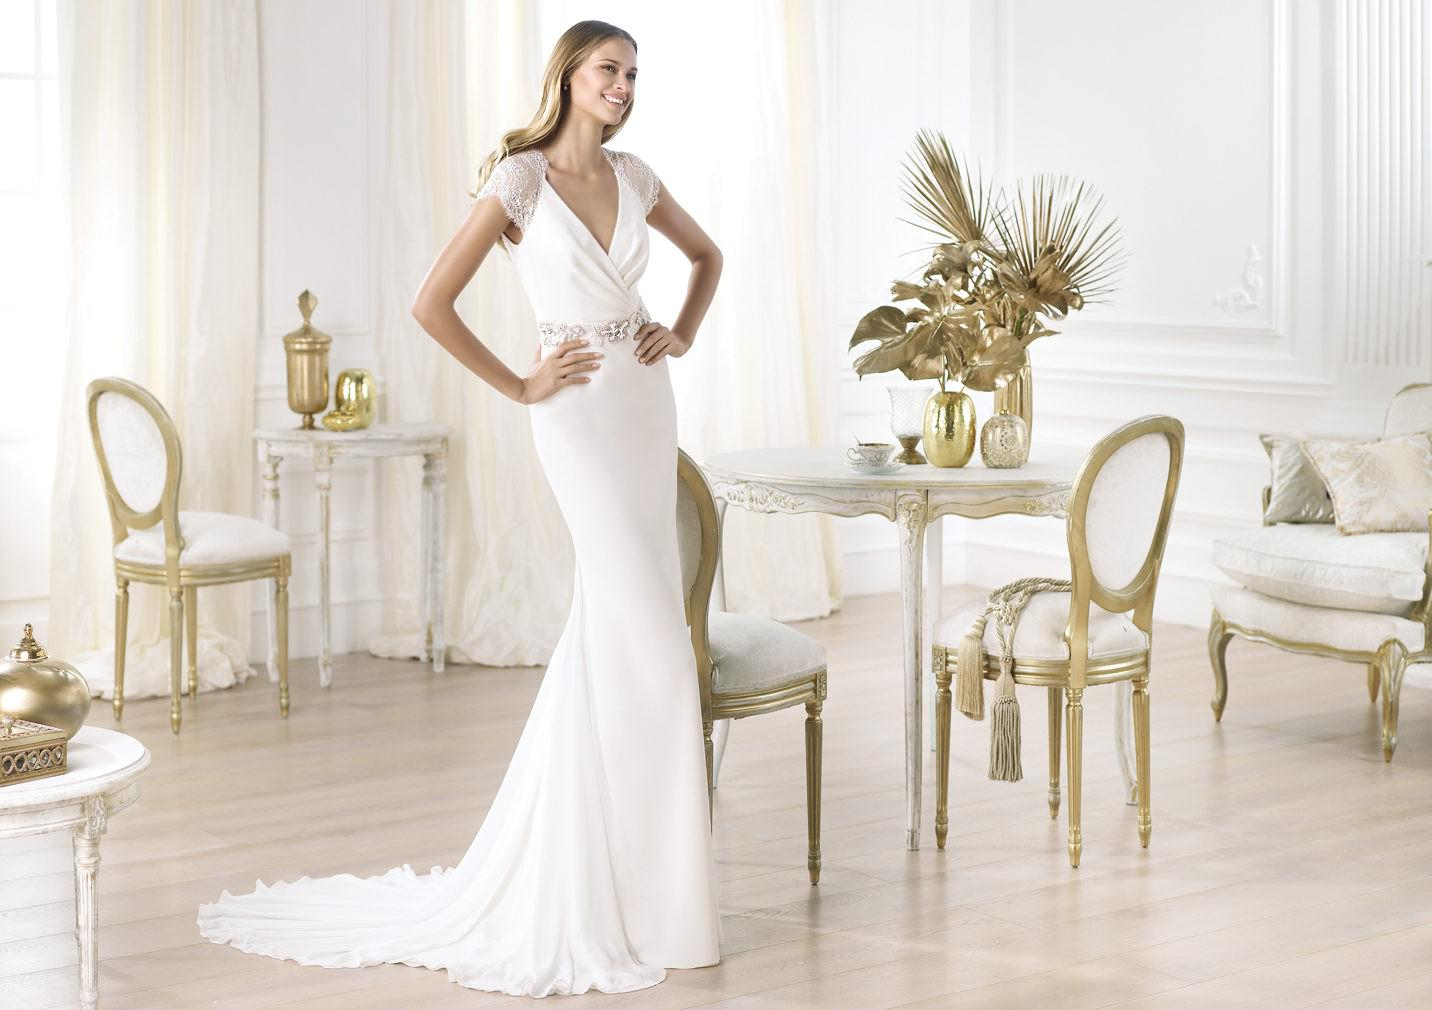 DEAR BRIDES, WHAT WILL YOU WEAR?